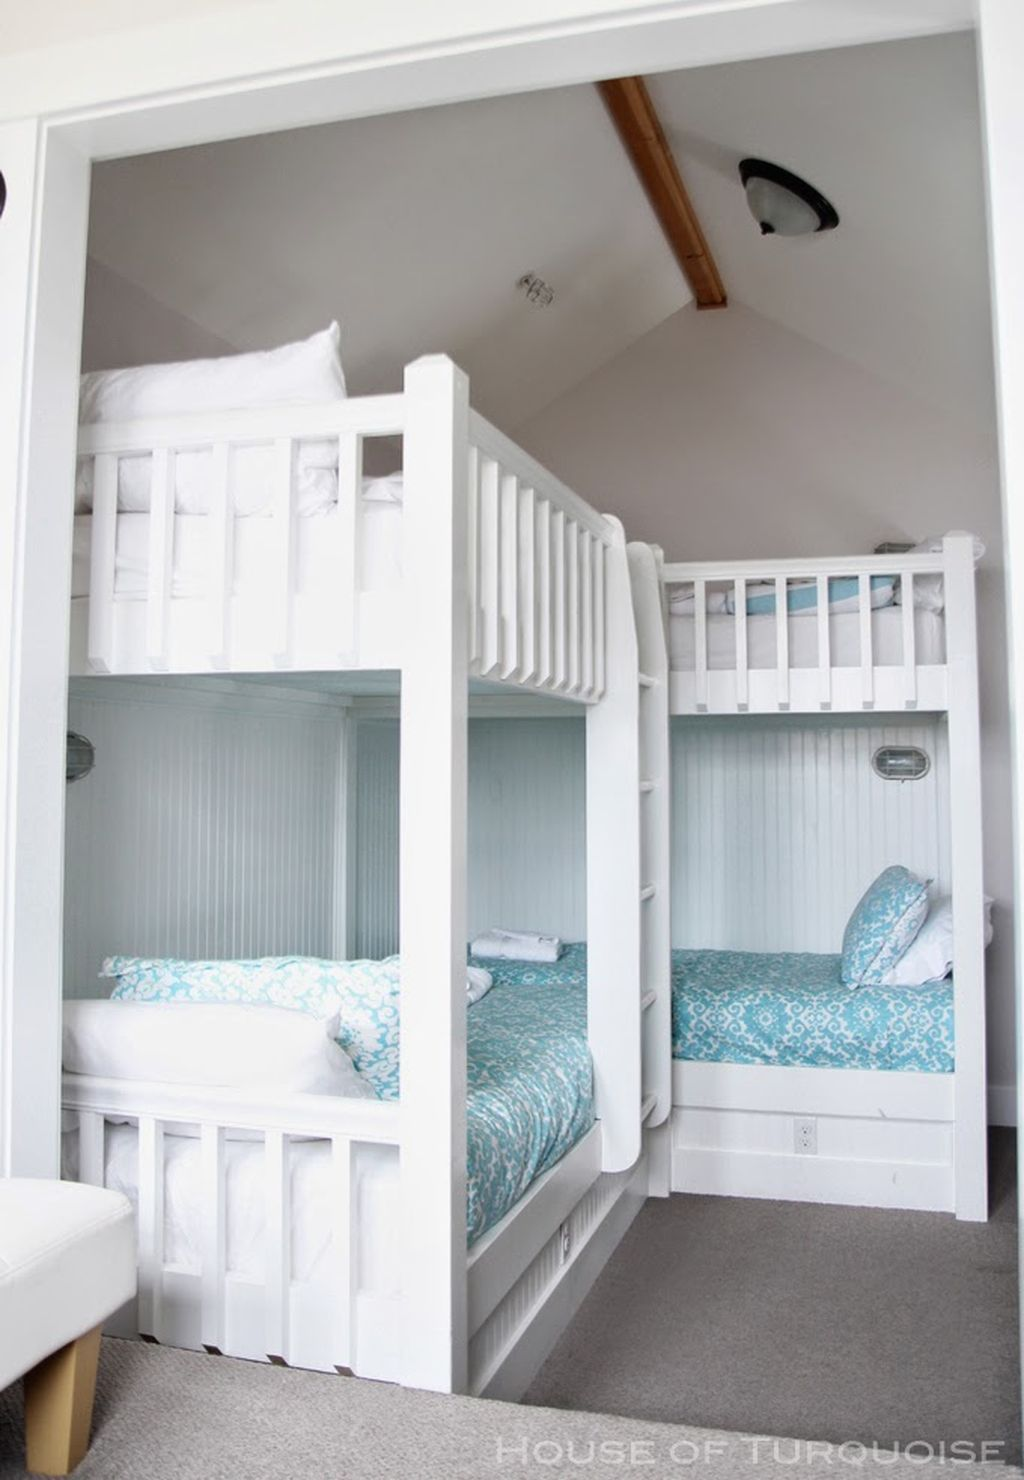 Bunk Bed Ideas For Small Rooms 75 Cute Boys Bedroom Design Ideas For Small Space Home